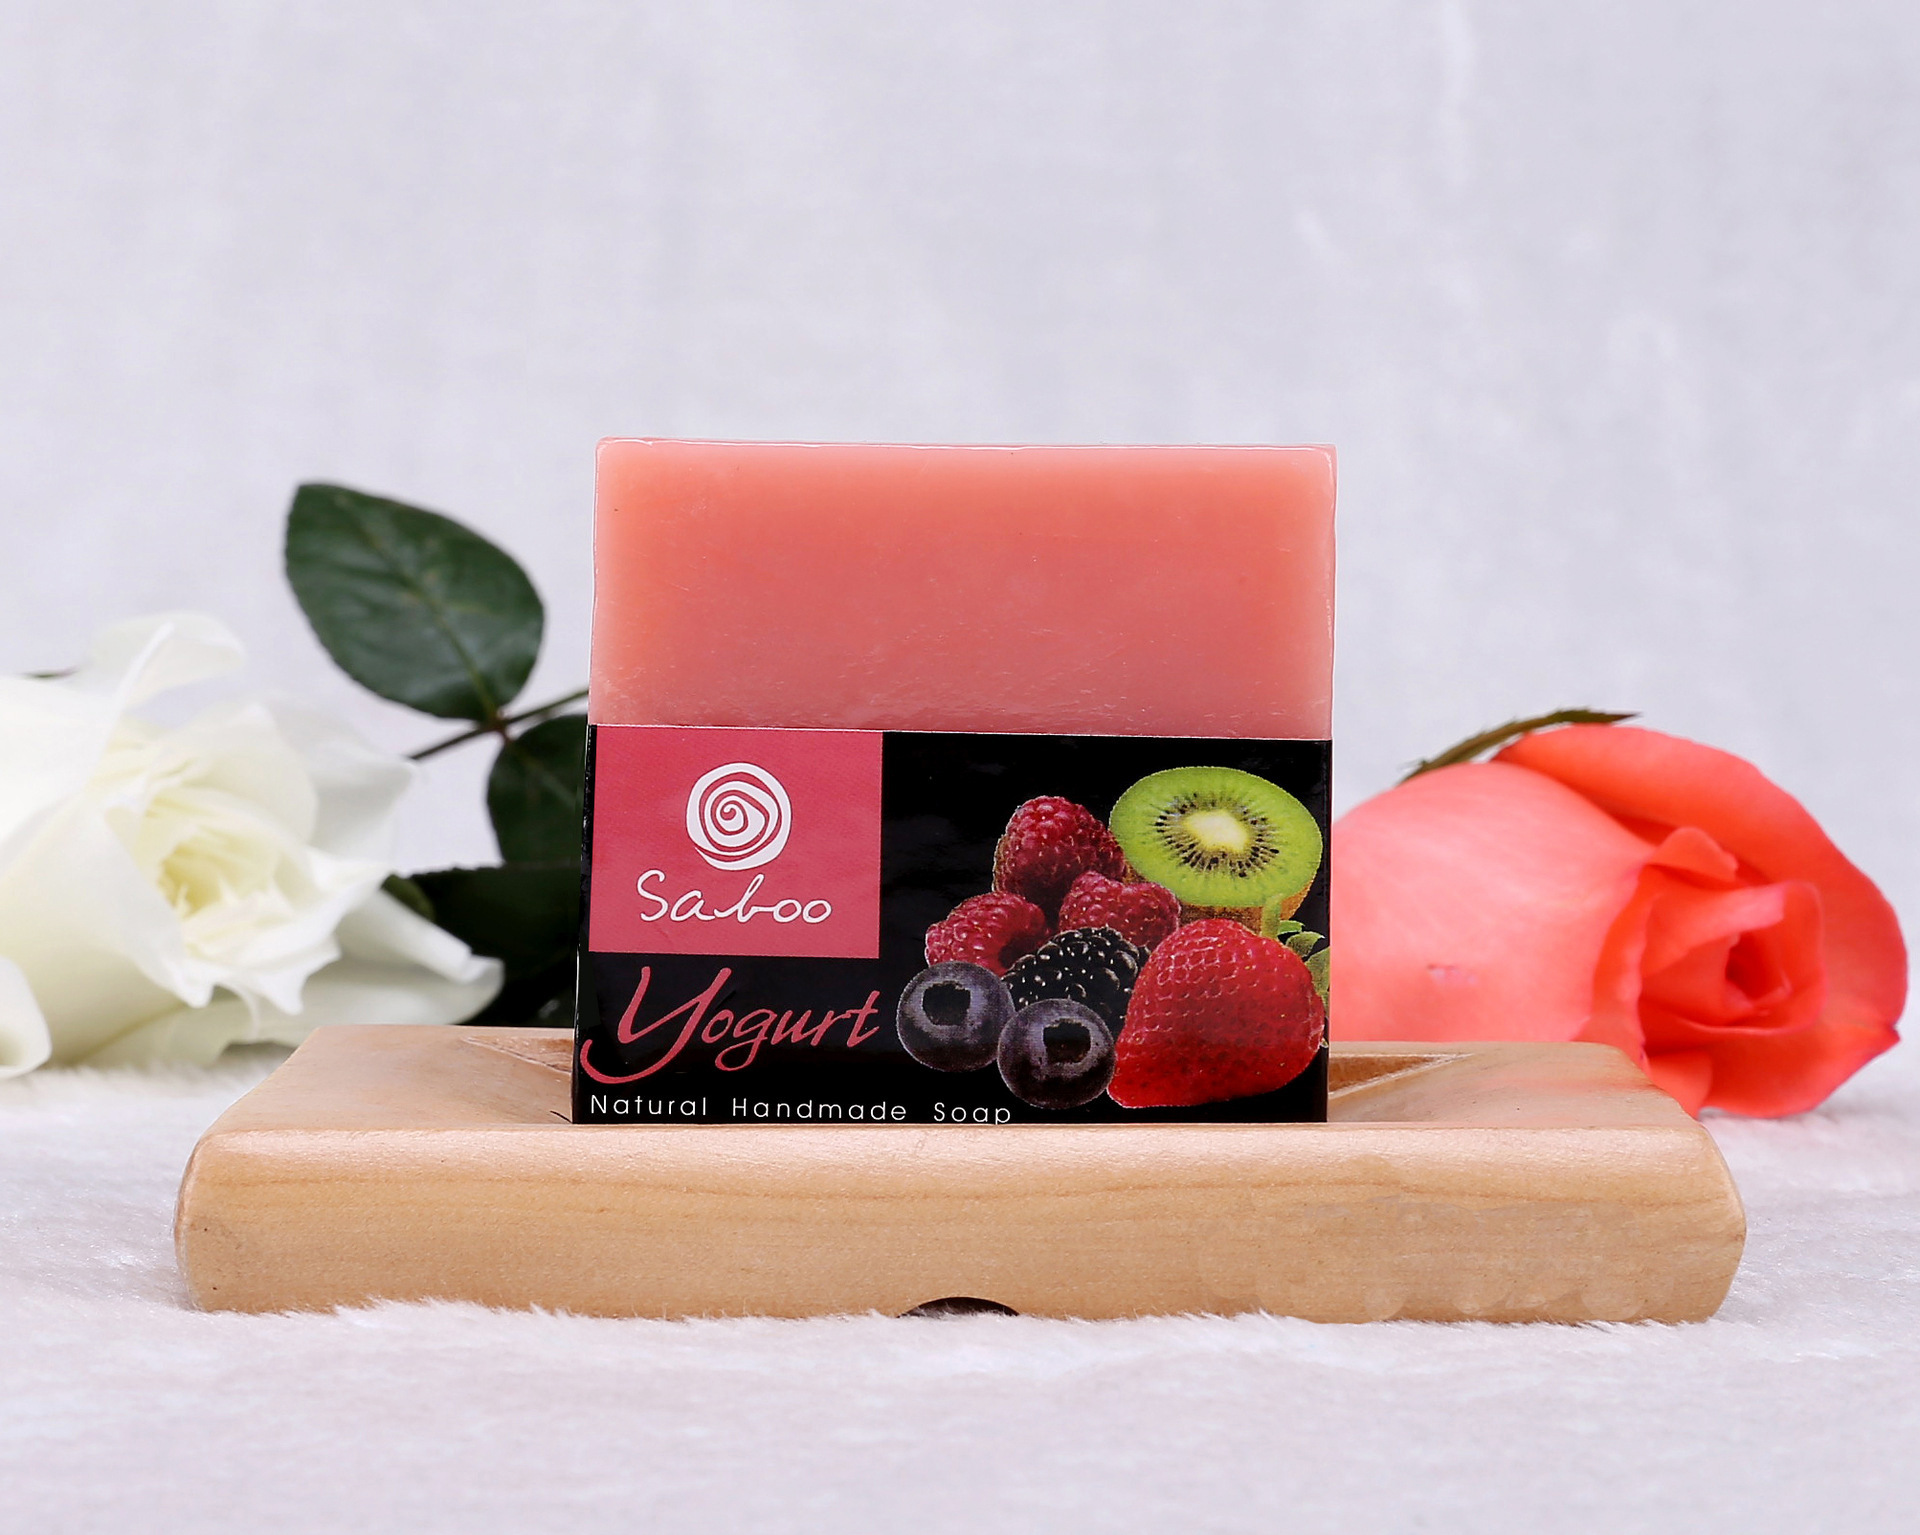 Yogurt Essential Oil Soap Handmade Soap 100g Anti-aging Blemishes Whitening, Relieve Fatigue Moisturizing